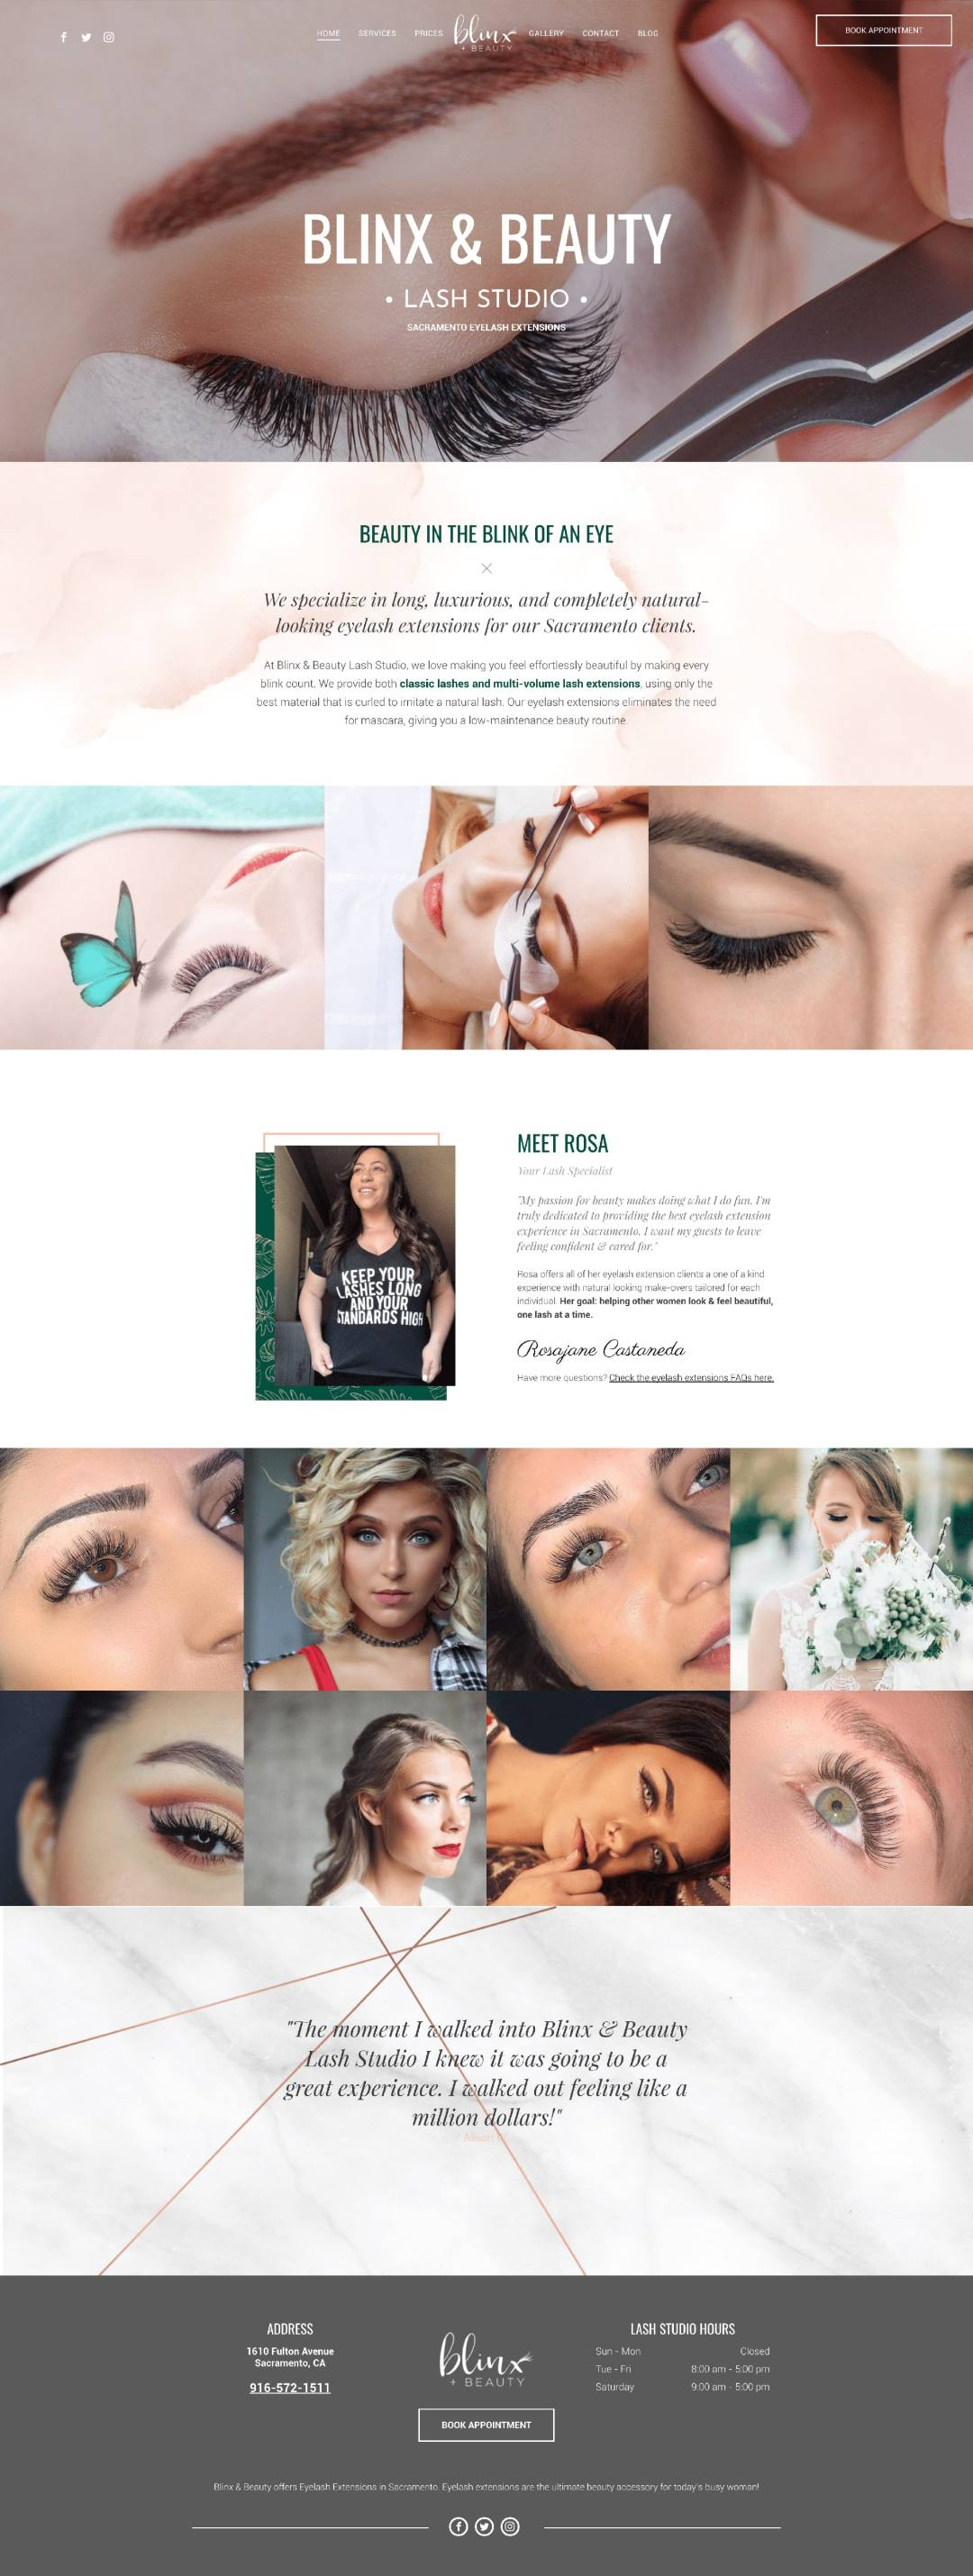 blinxandbeauty eyelash extensions website design min - Eyelash Extensions Branding & Website